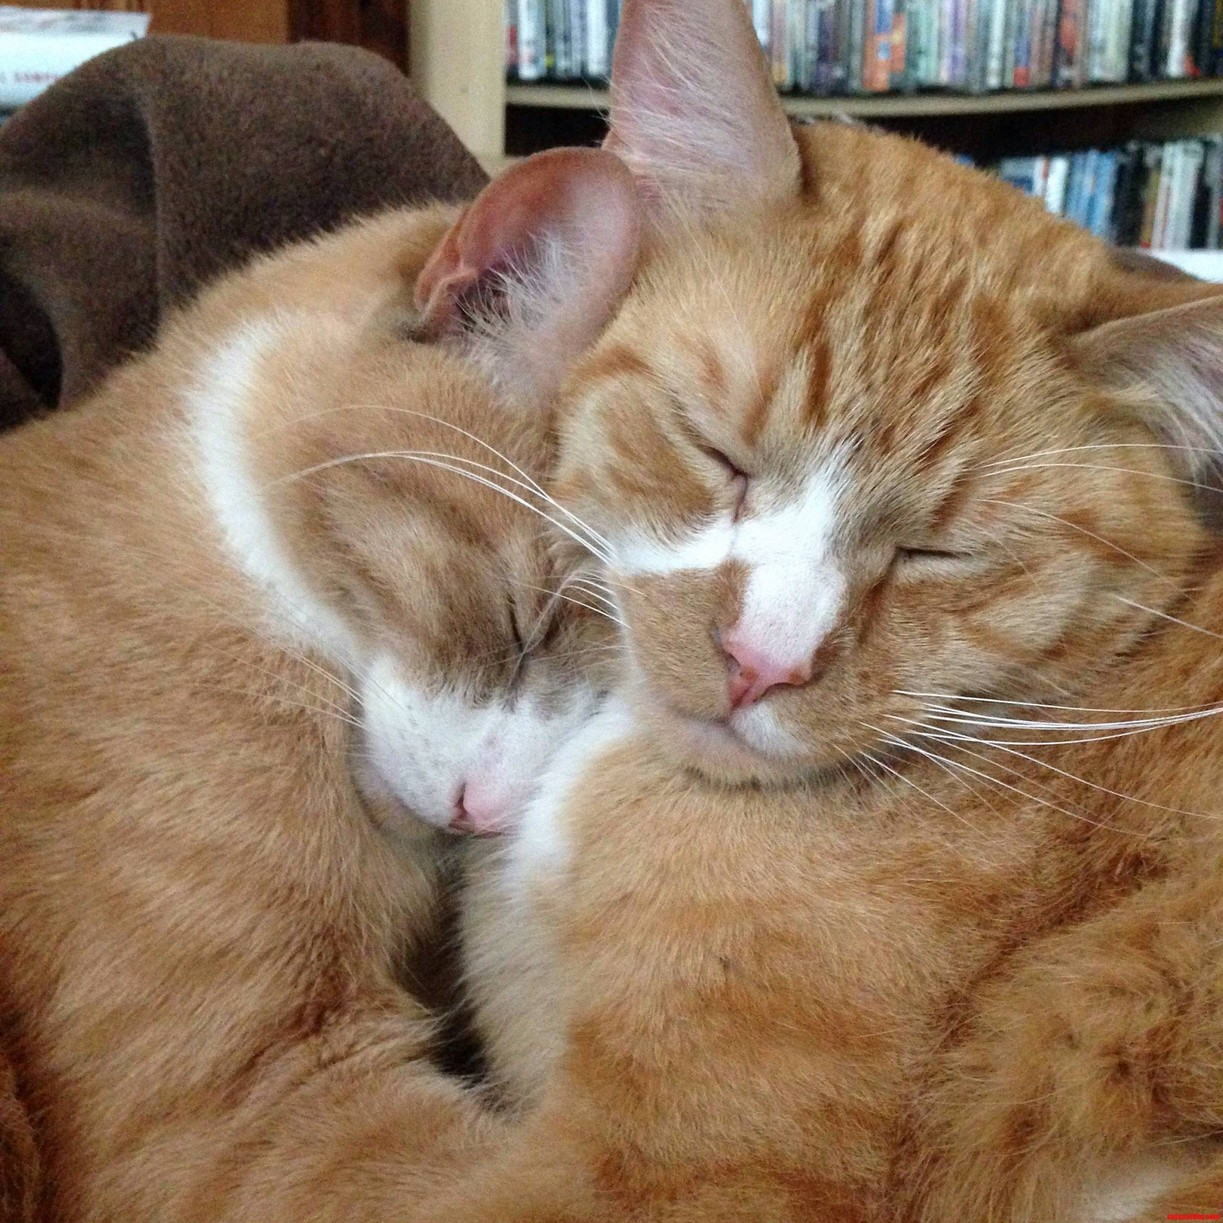 Brother cuddles.